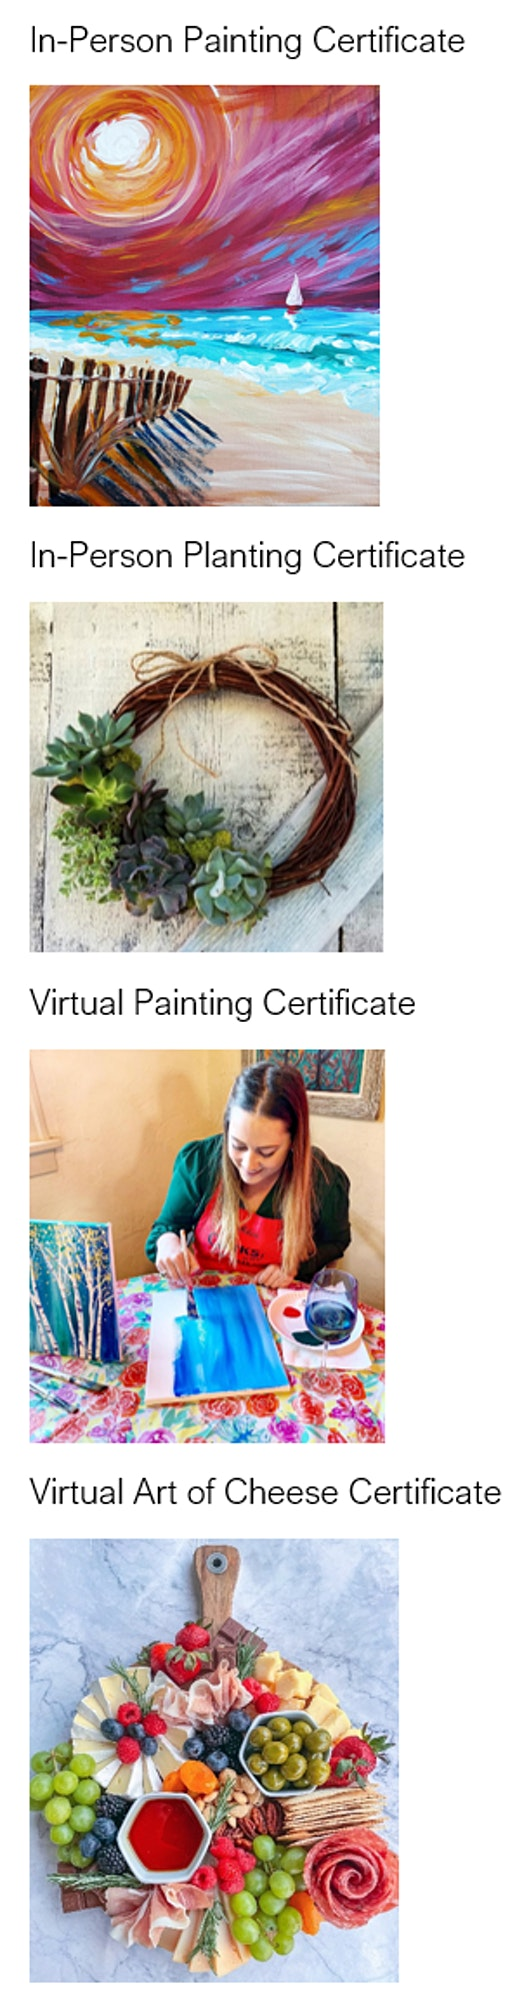 Corks and Canvas Event Gift Certificates 2021 image